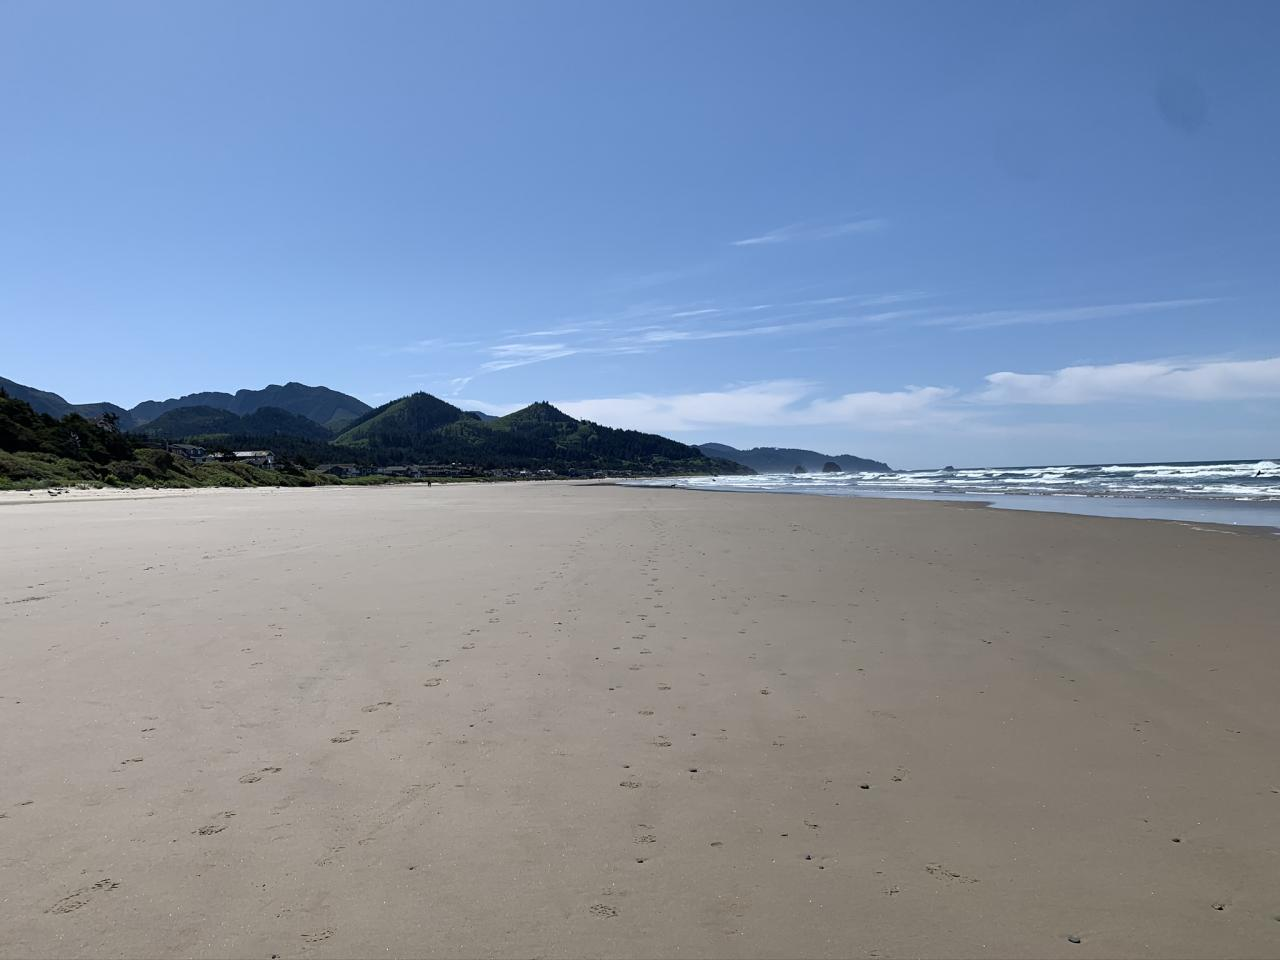 Beach, looking south to Tolovana